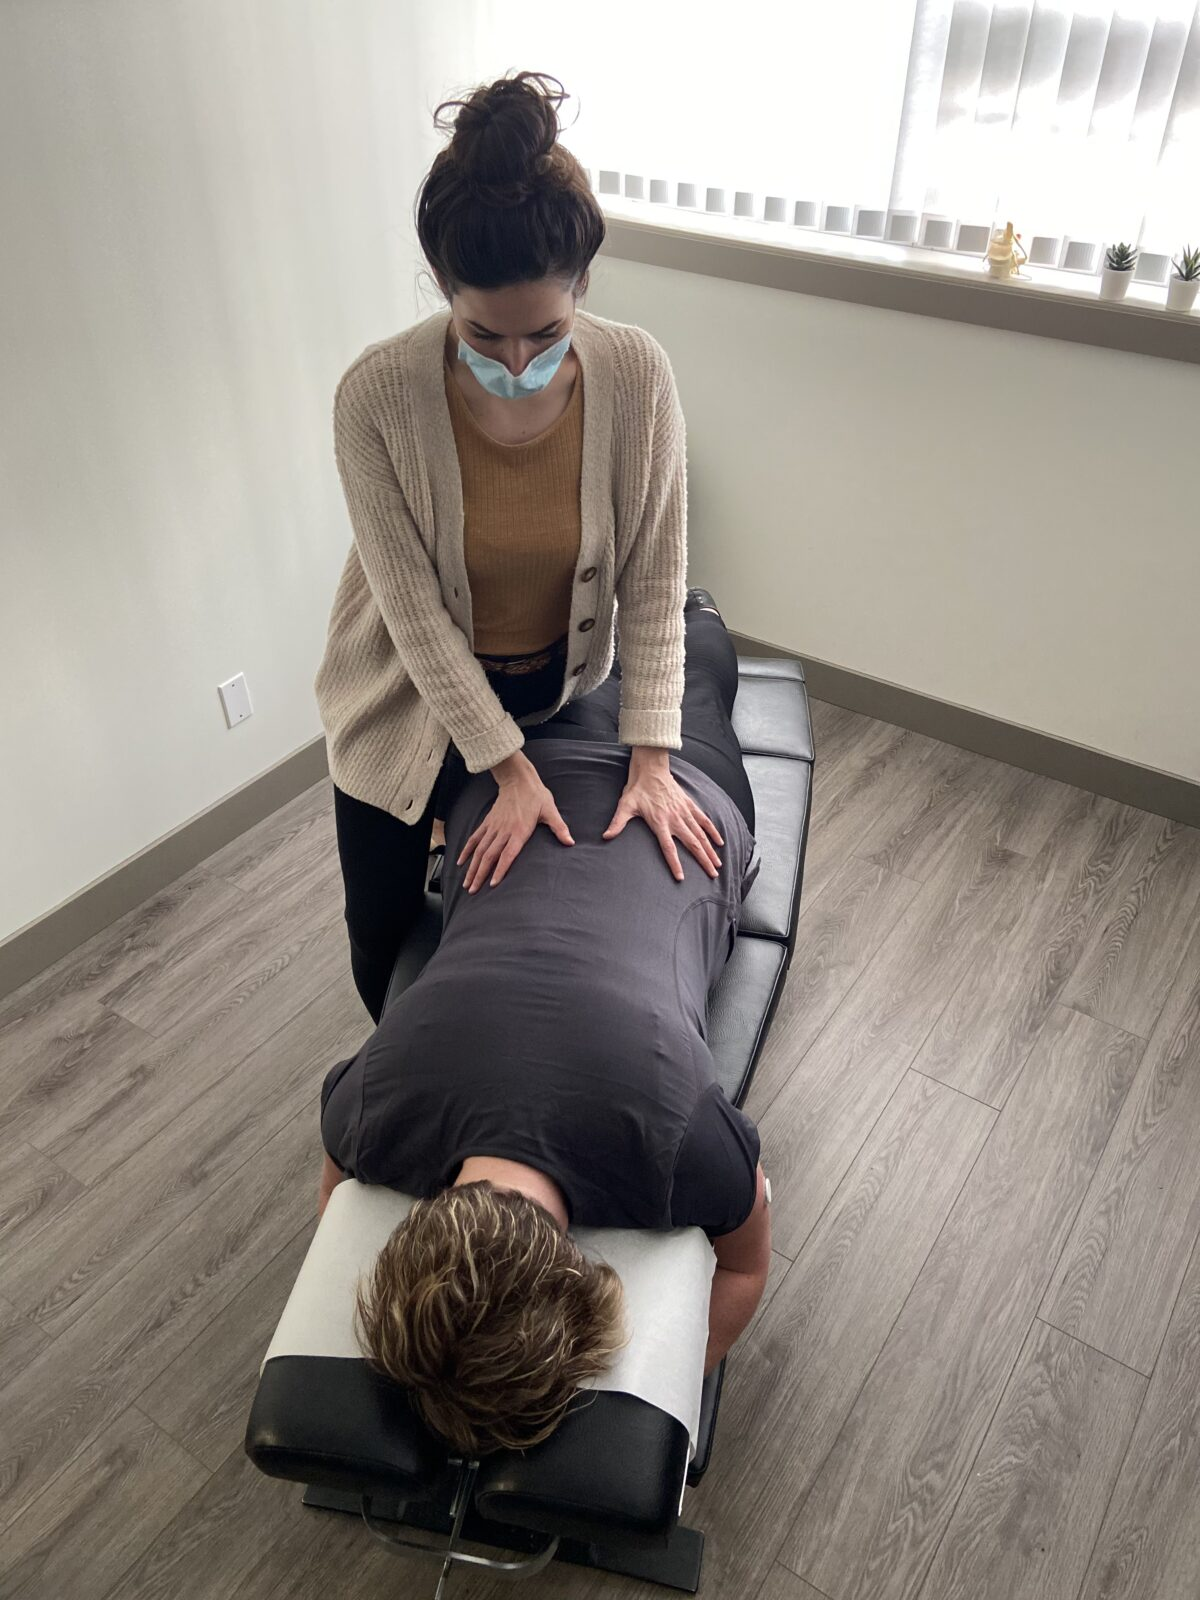 getting an adjustment